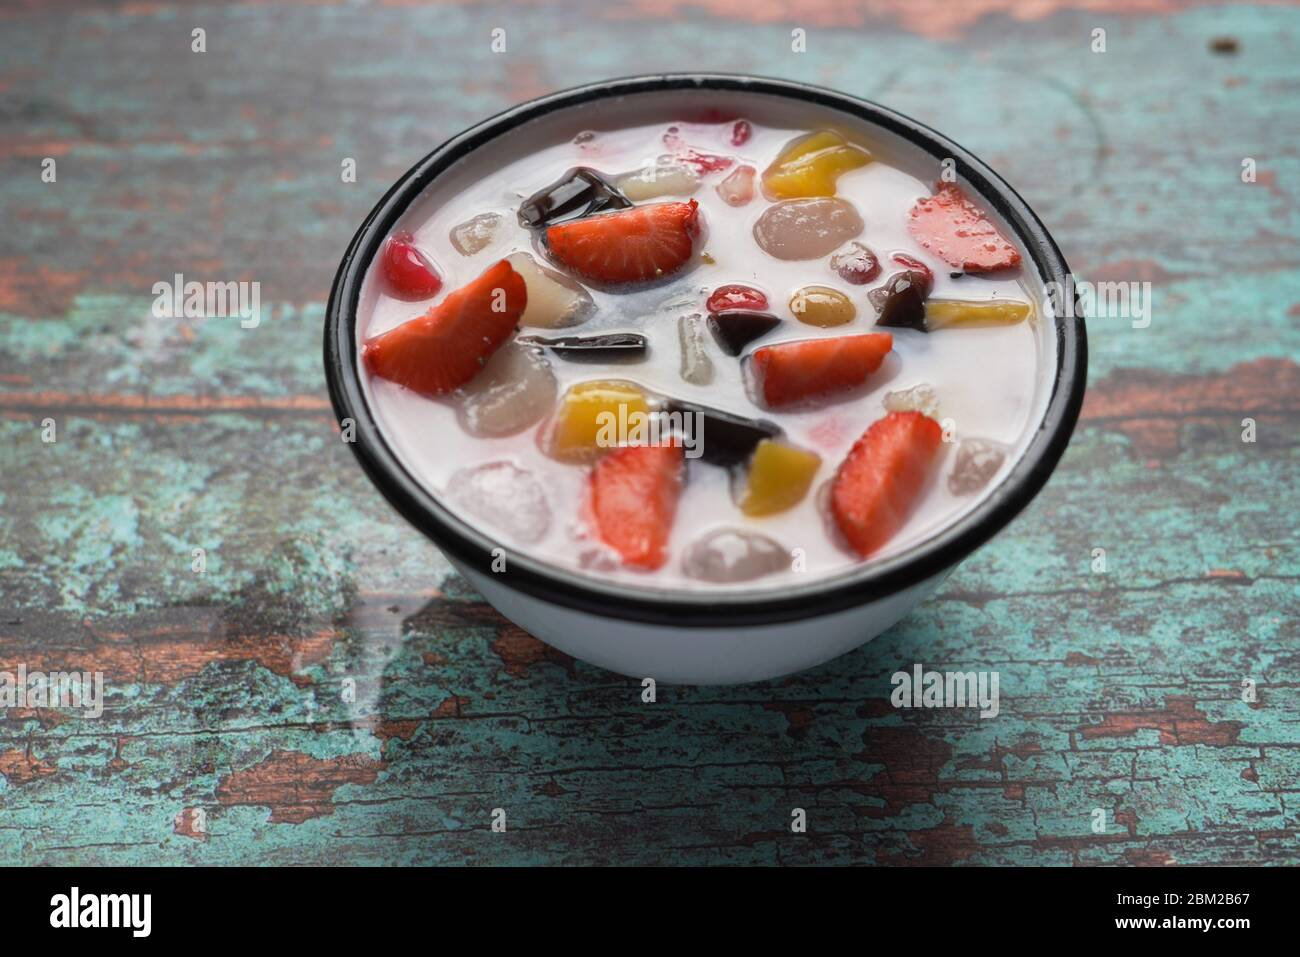 Es Campur High Resolution Stock Photography And Images Alamy